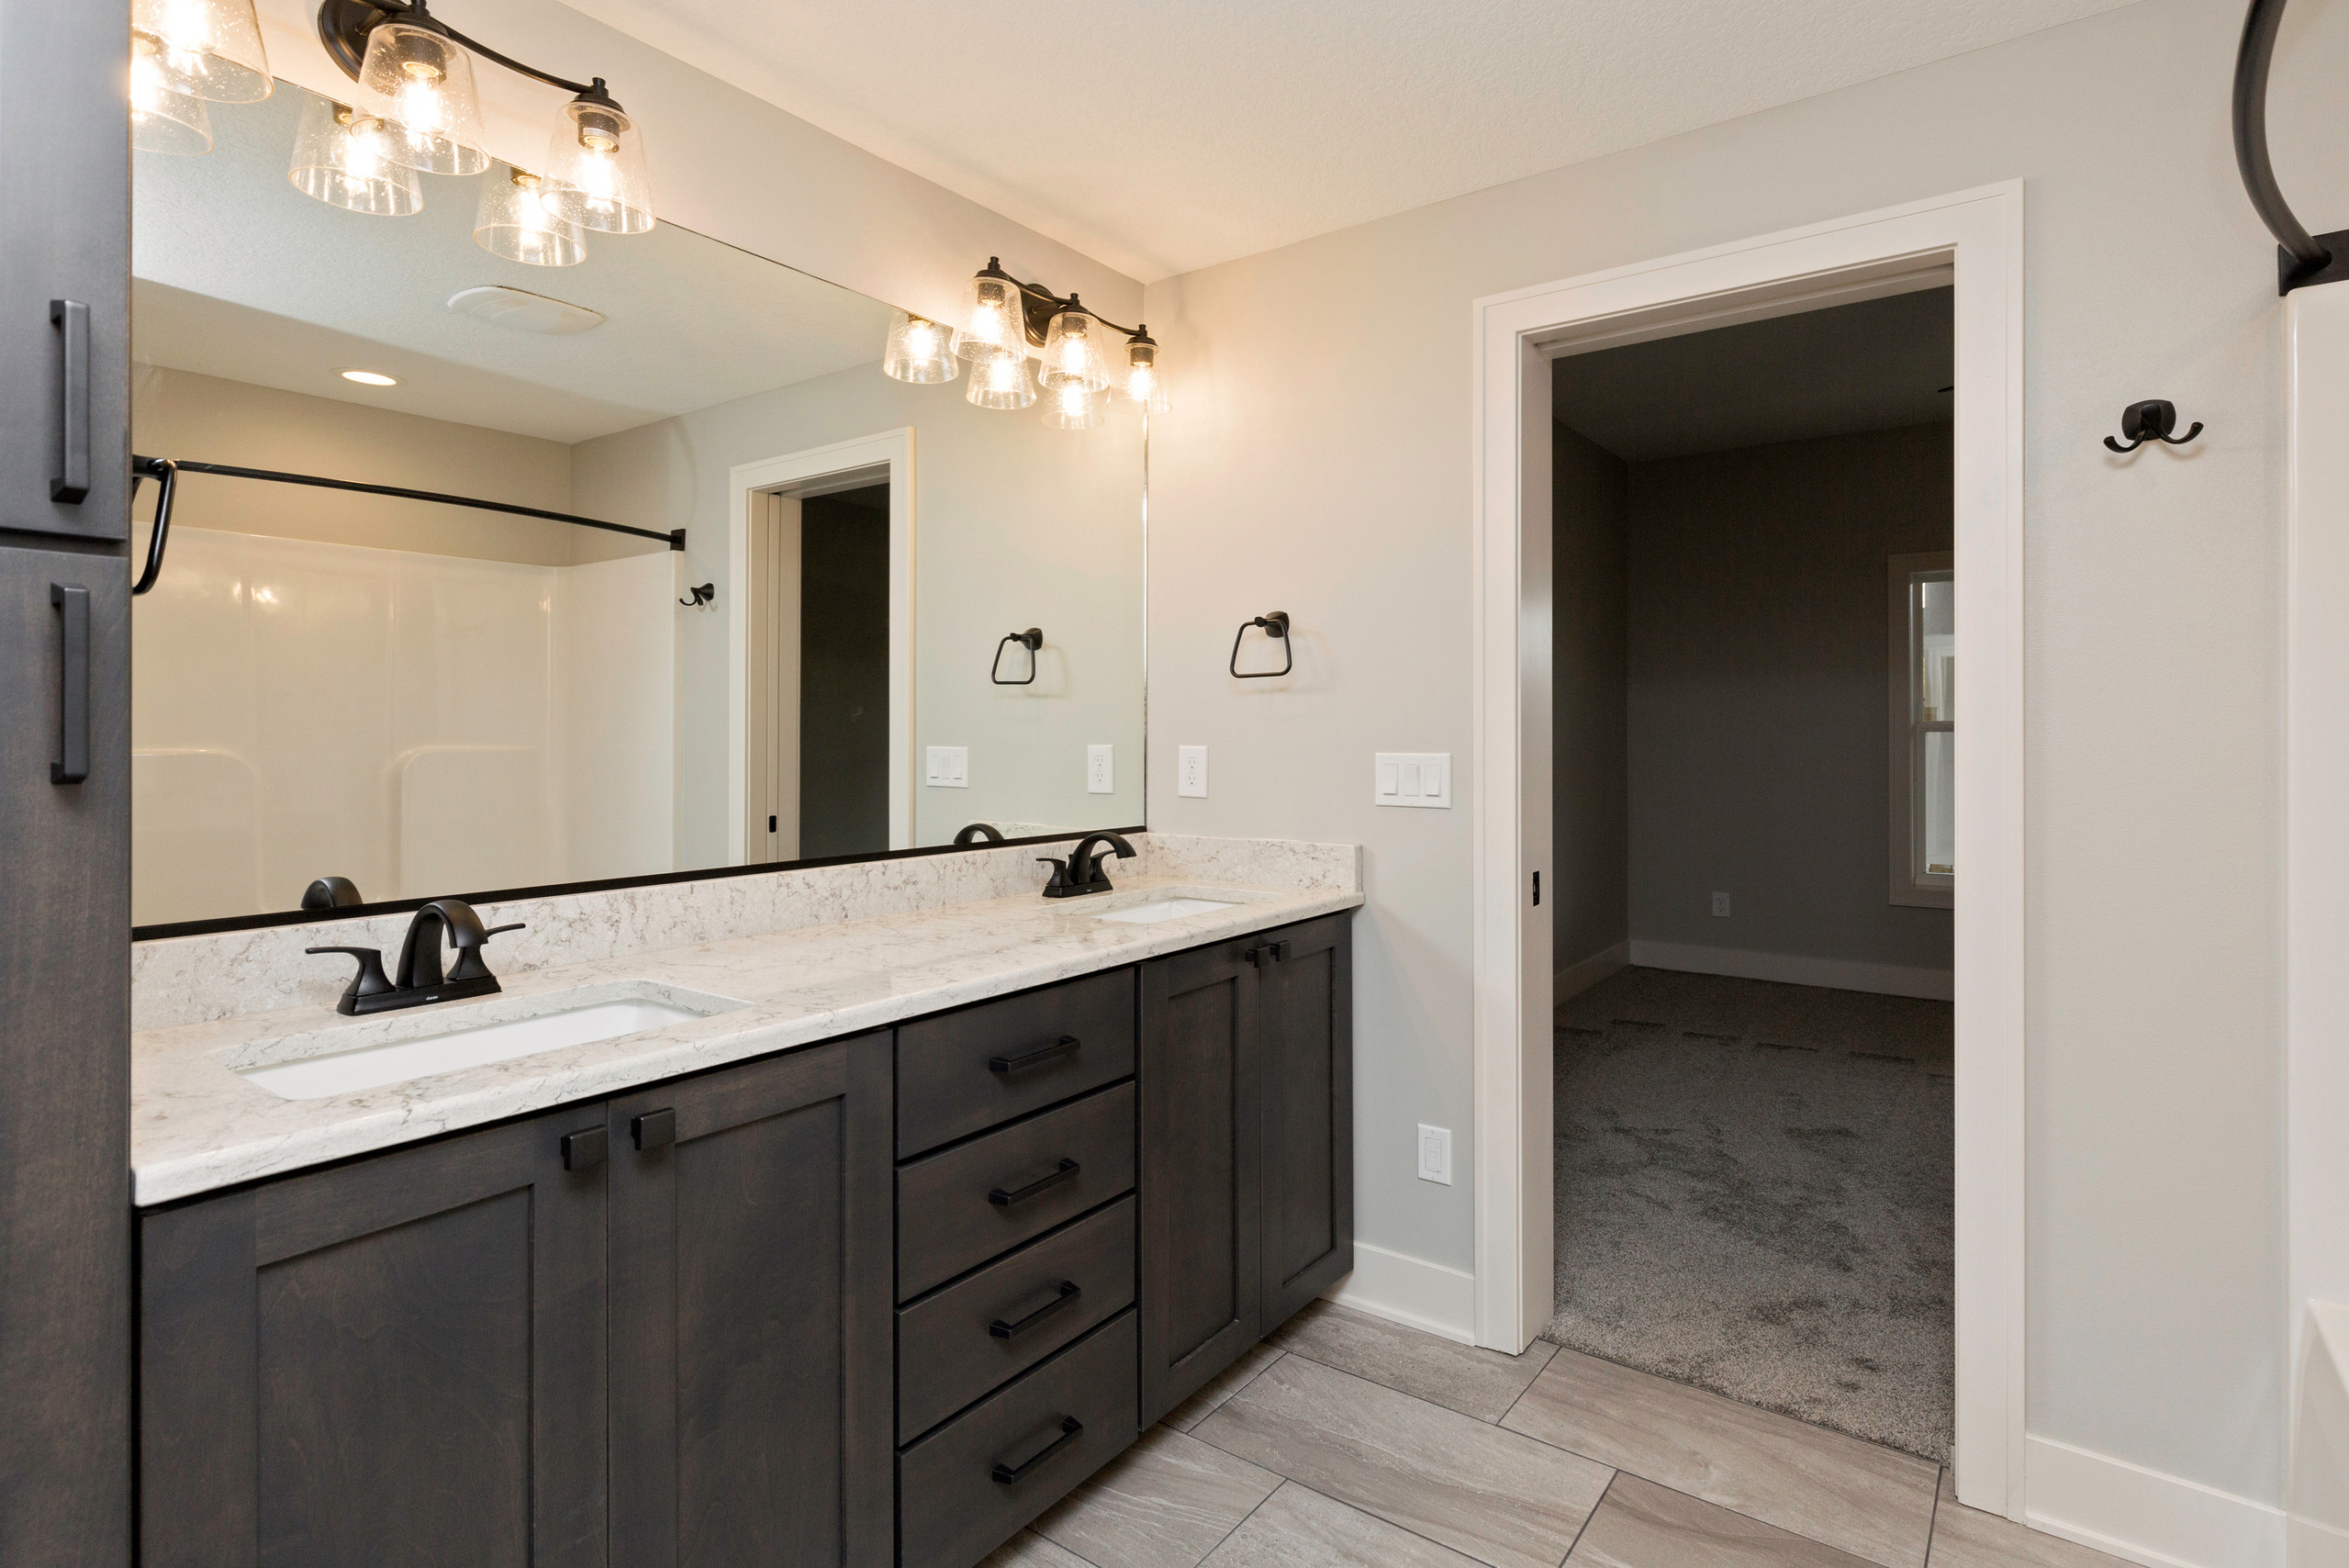 2019 Expanded Edgewater with LL Mother-in-law suite